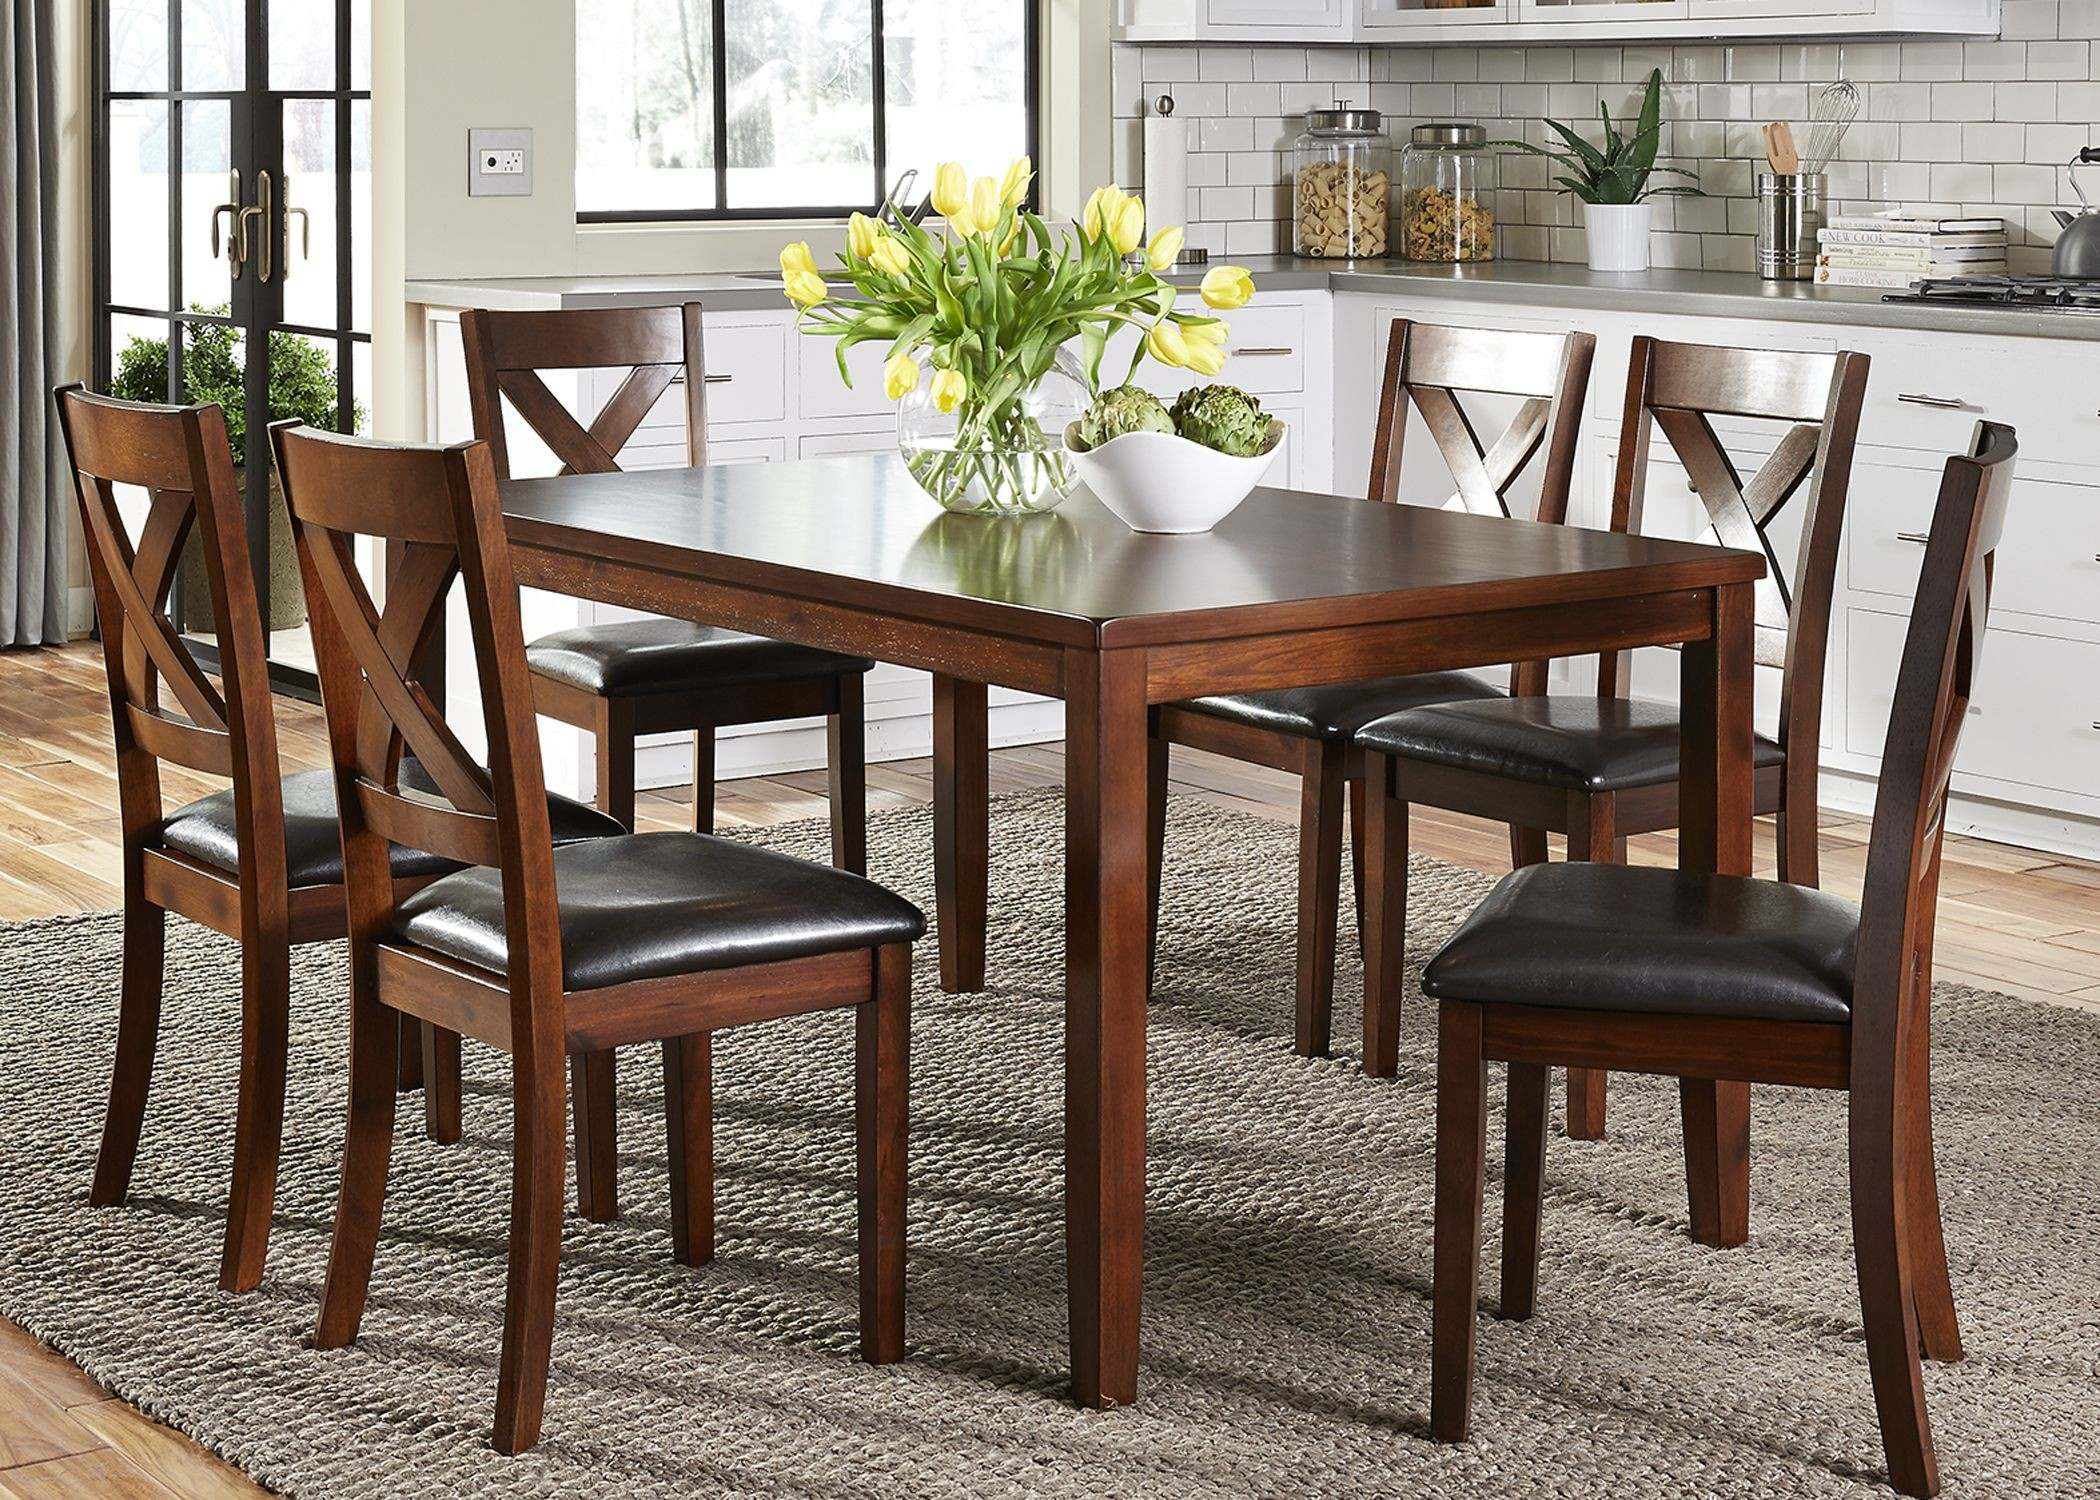 Thornton russet 7 piece rectangular dining room set 164 for 2 piece dining room set